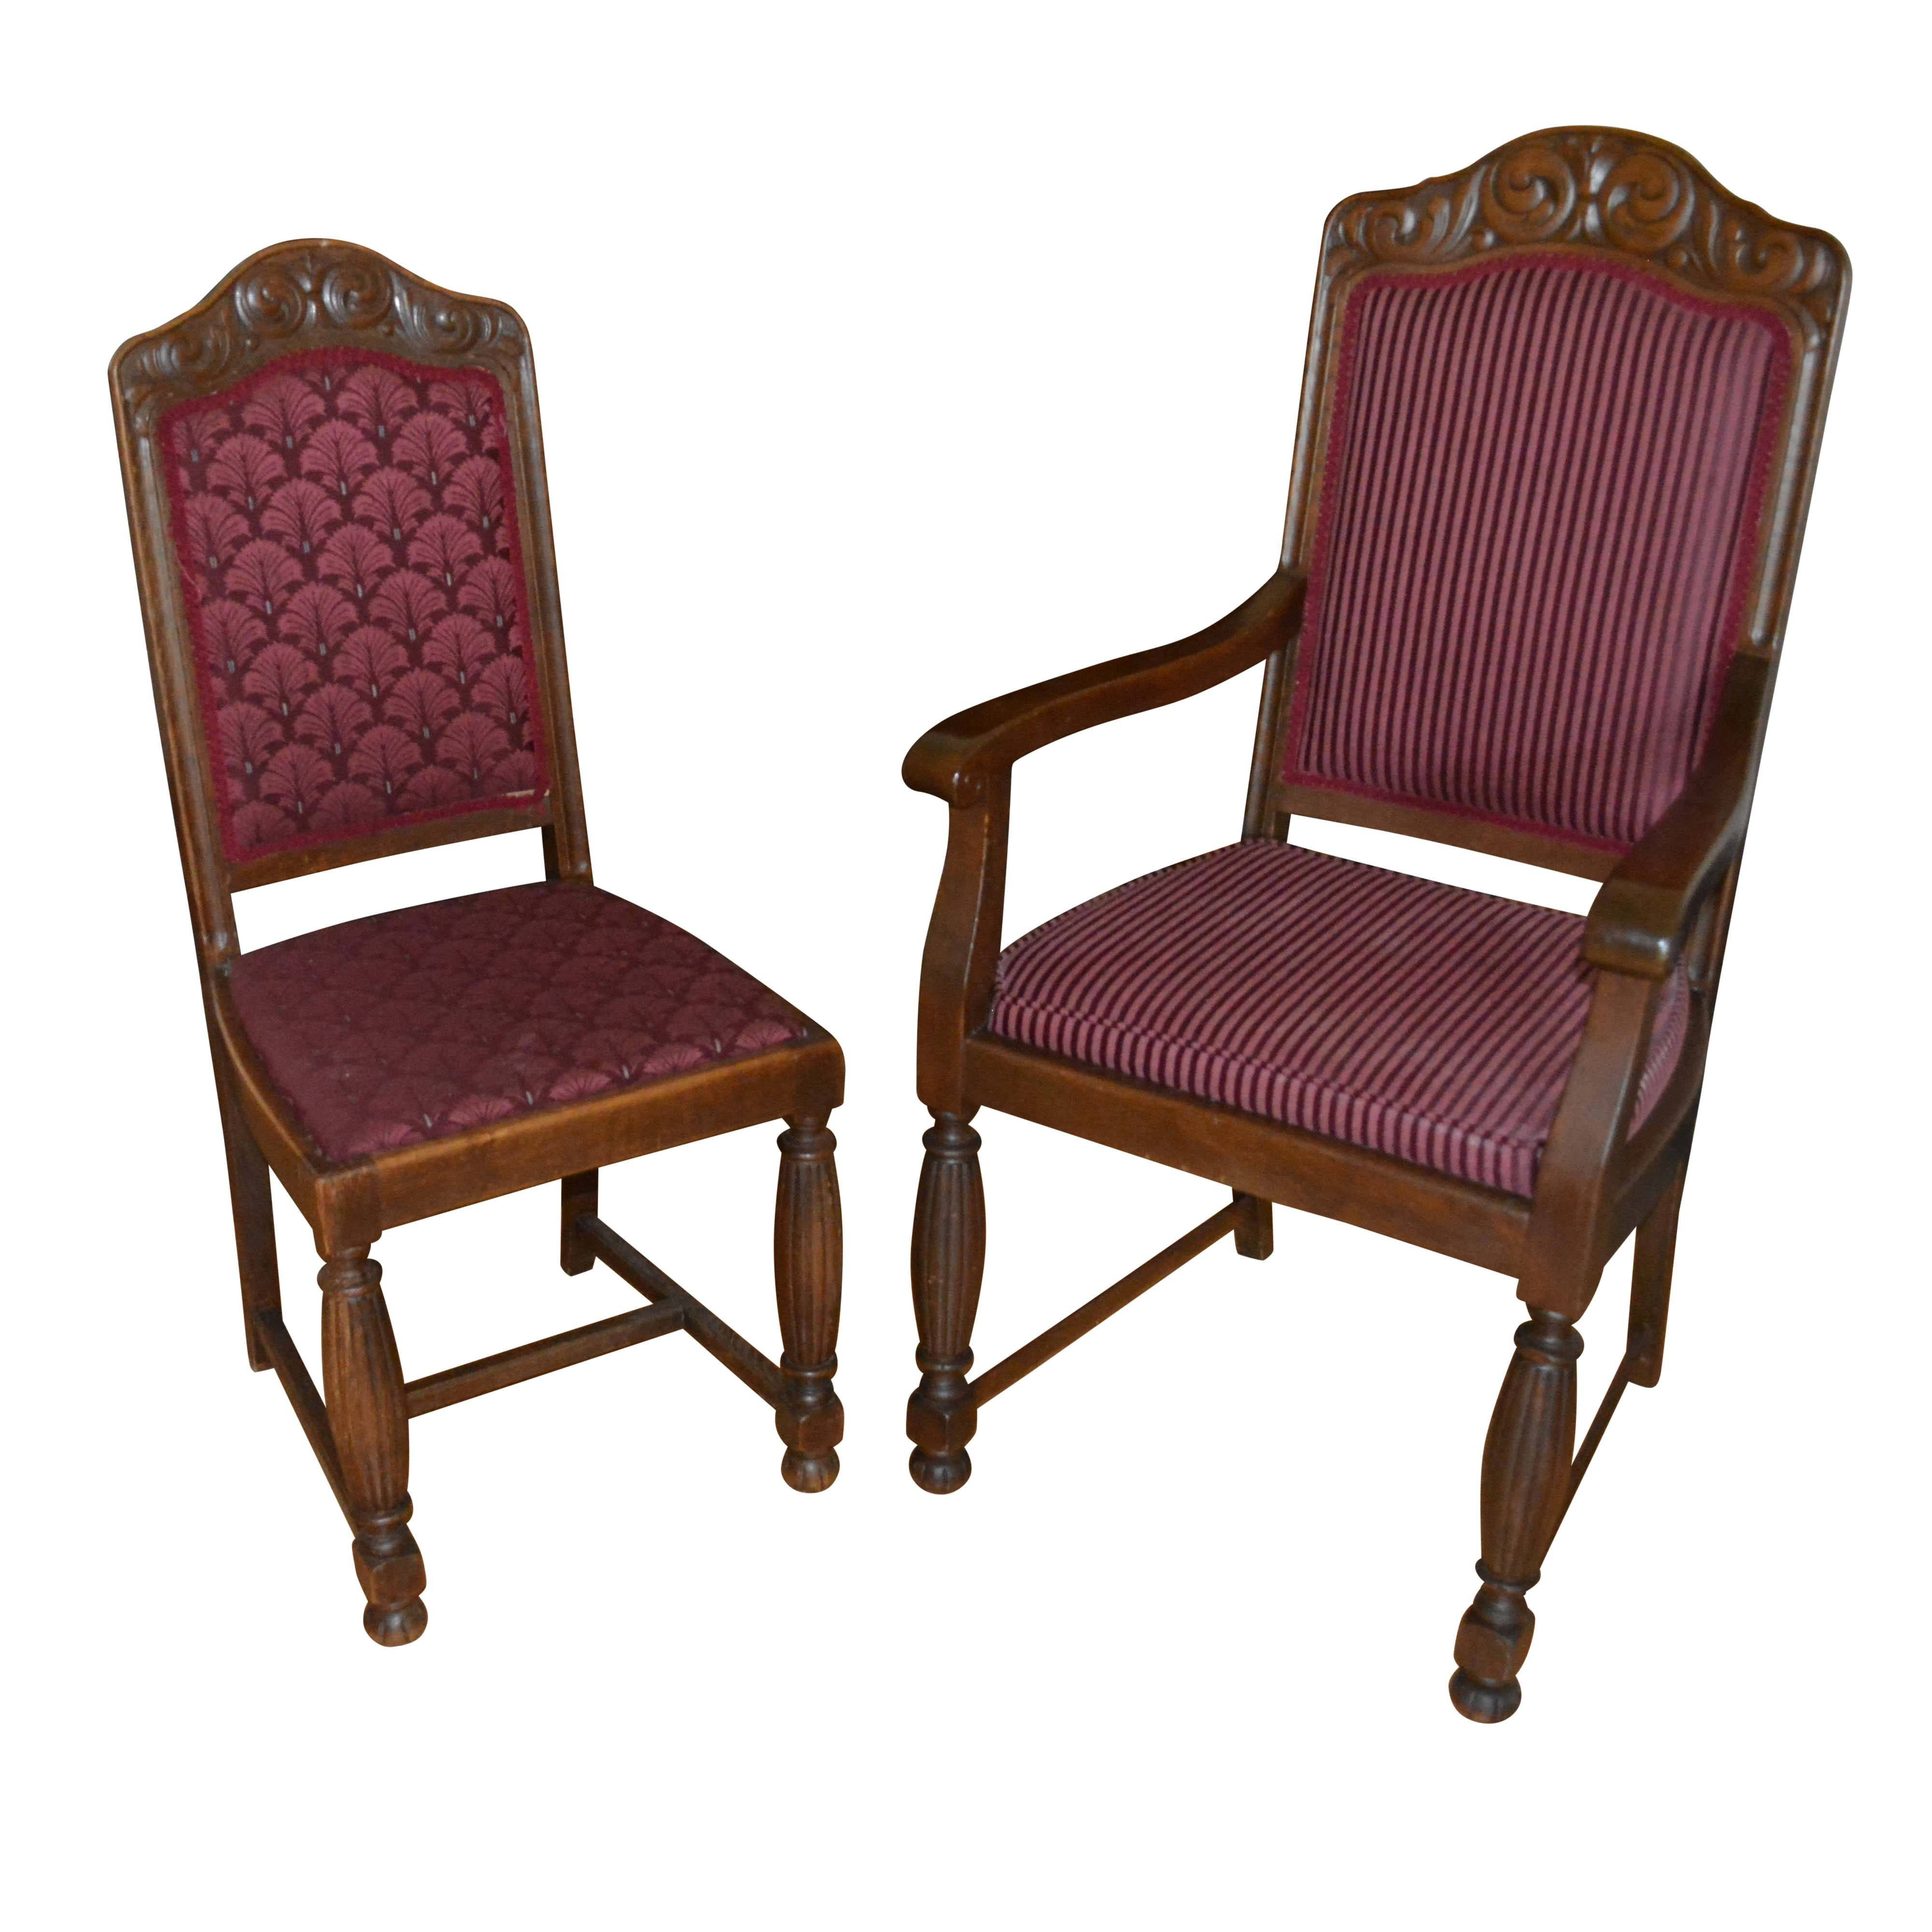 Cranberry Upholstered Armchair and Side Chair